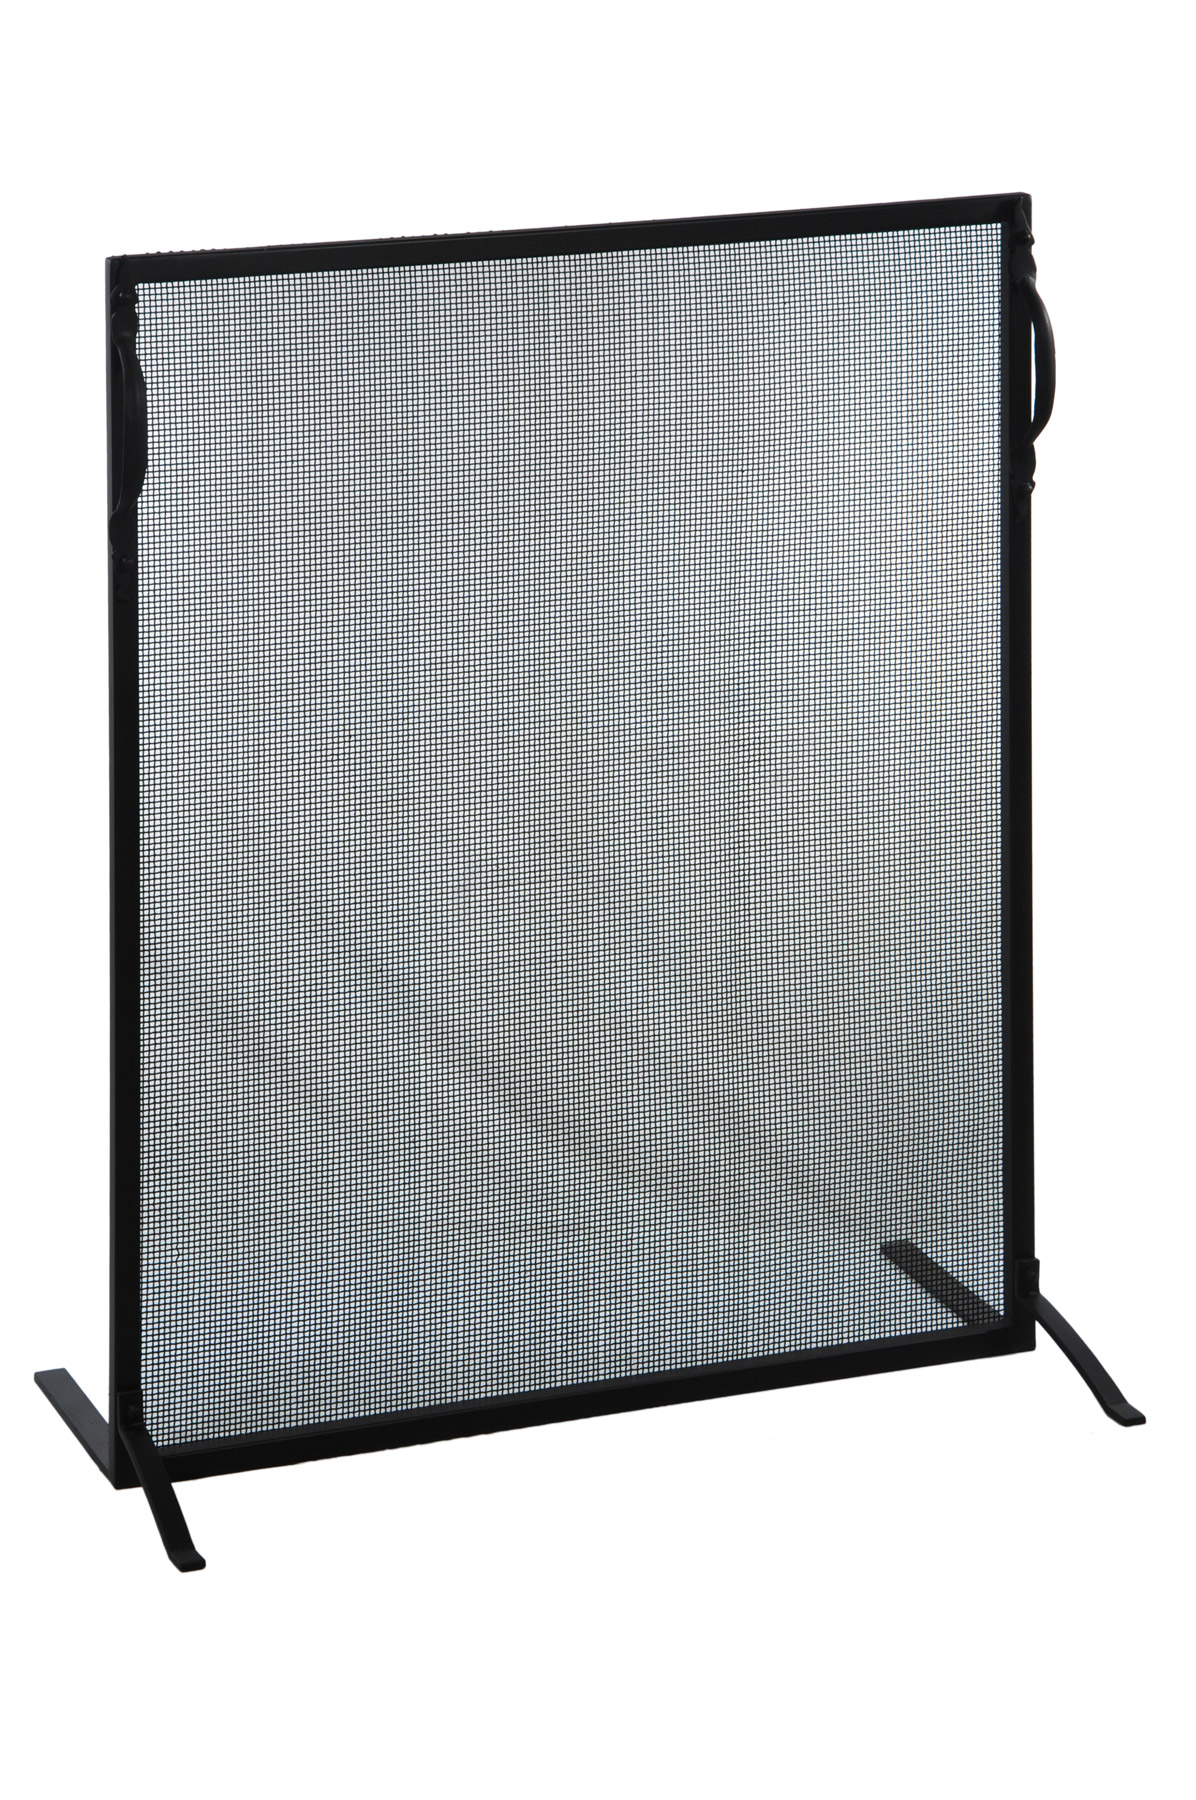 meyda 130631 simple fireplace screen